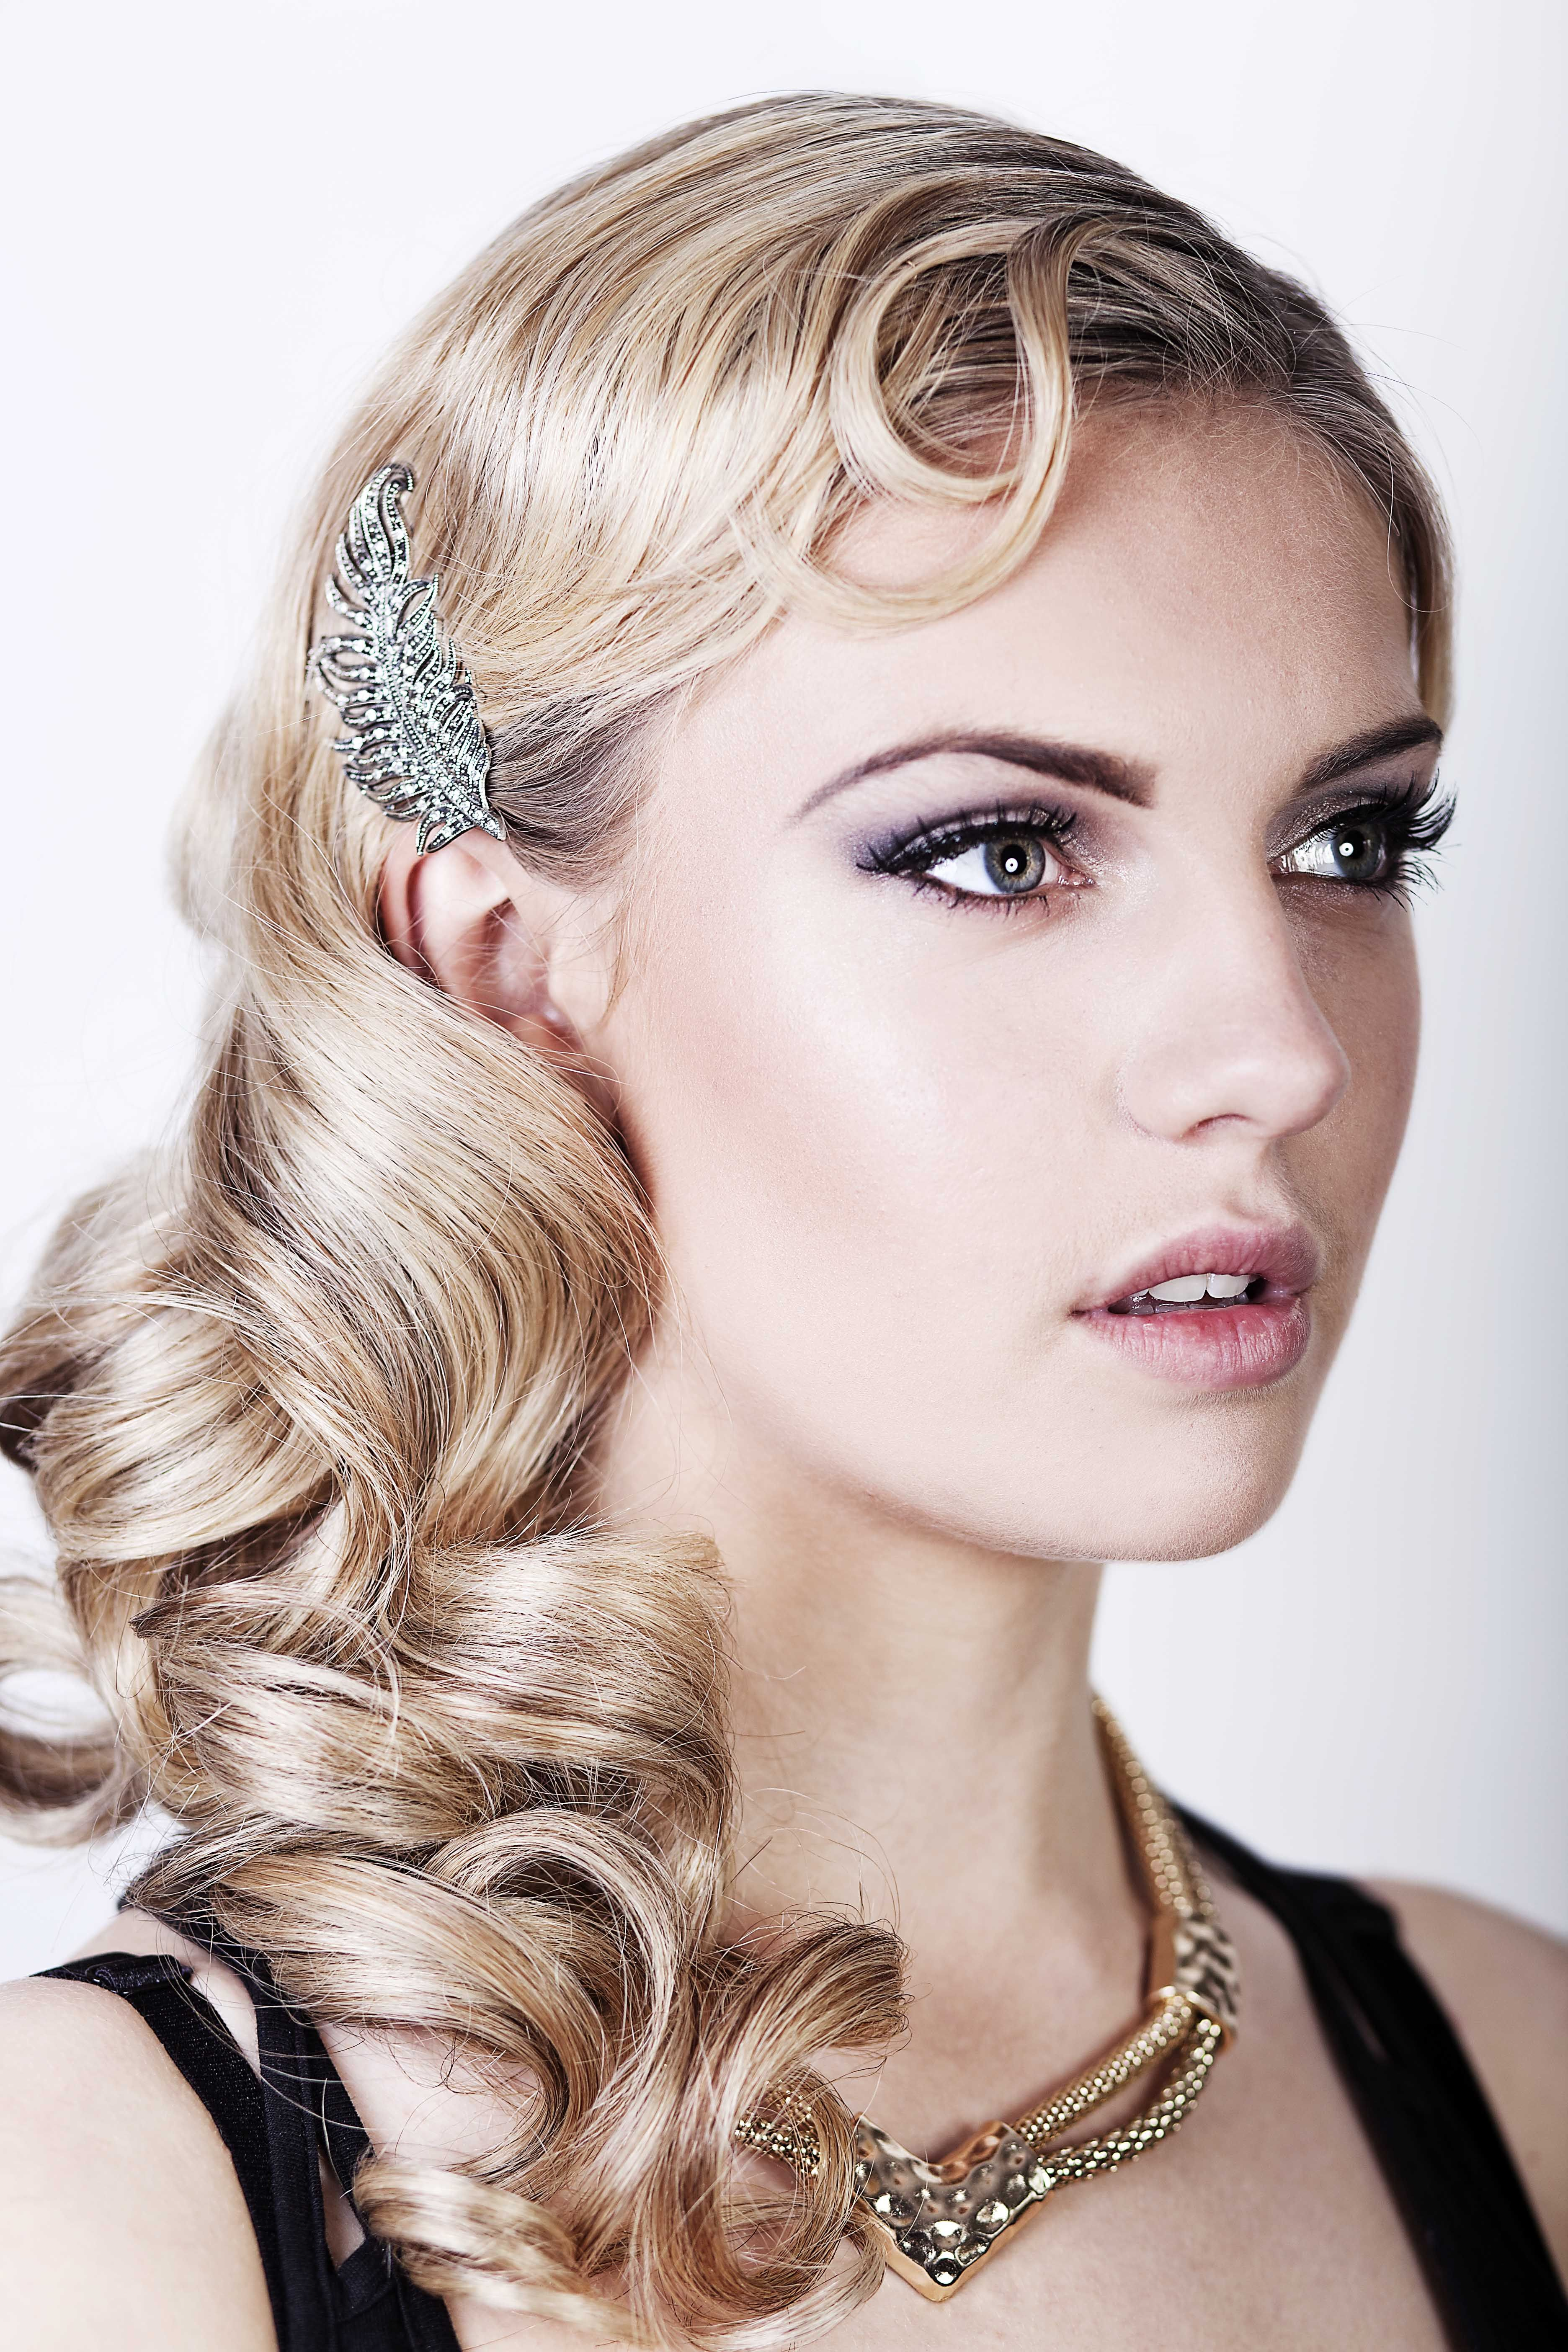 Friday Feature Seriously Great Gatsby 20s Inspired Hair & Make Up